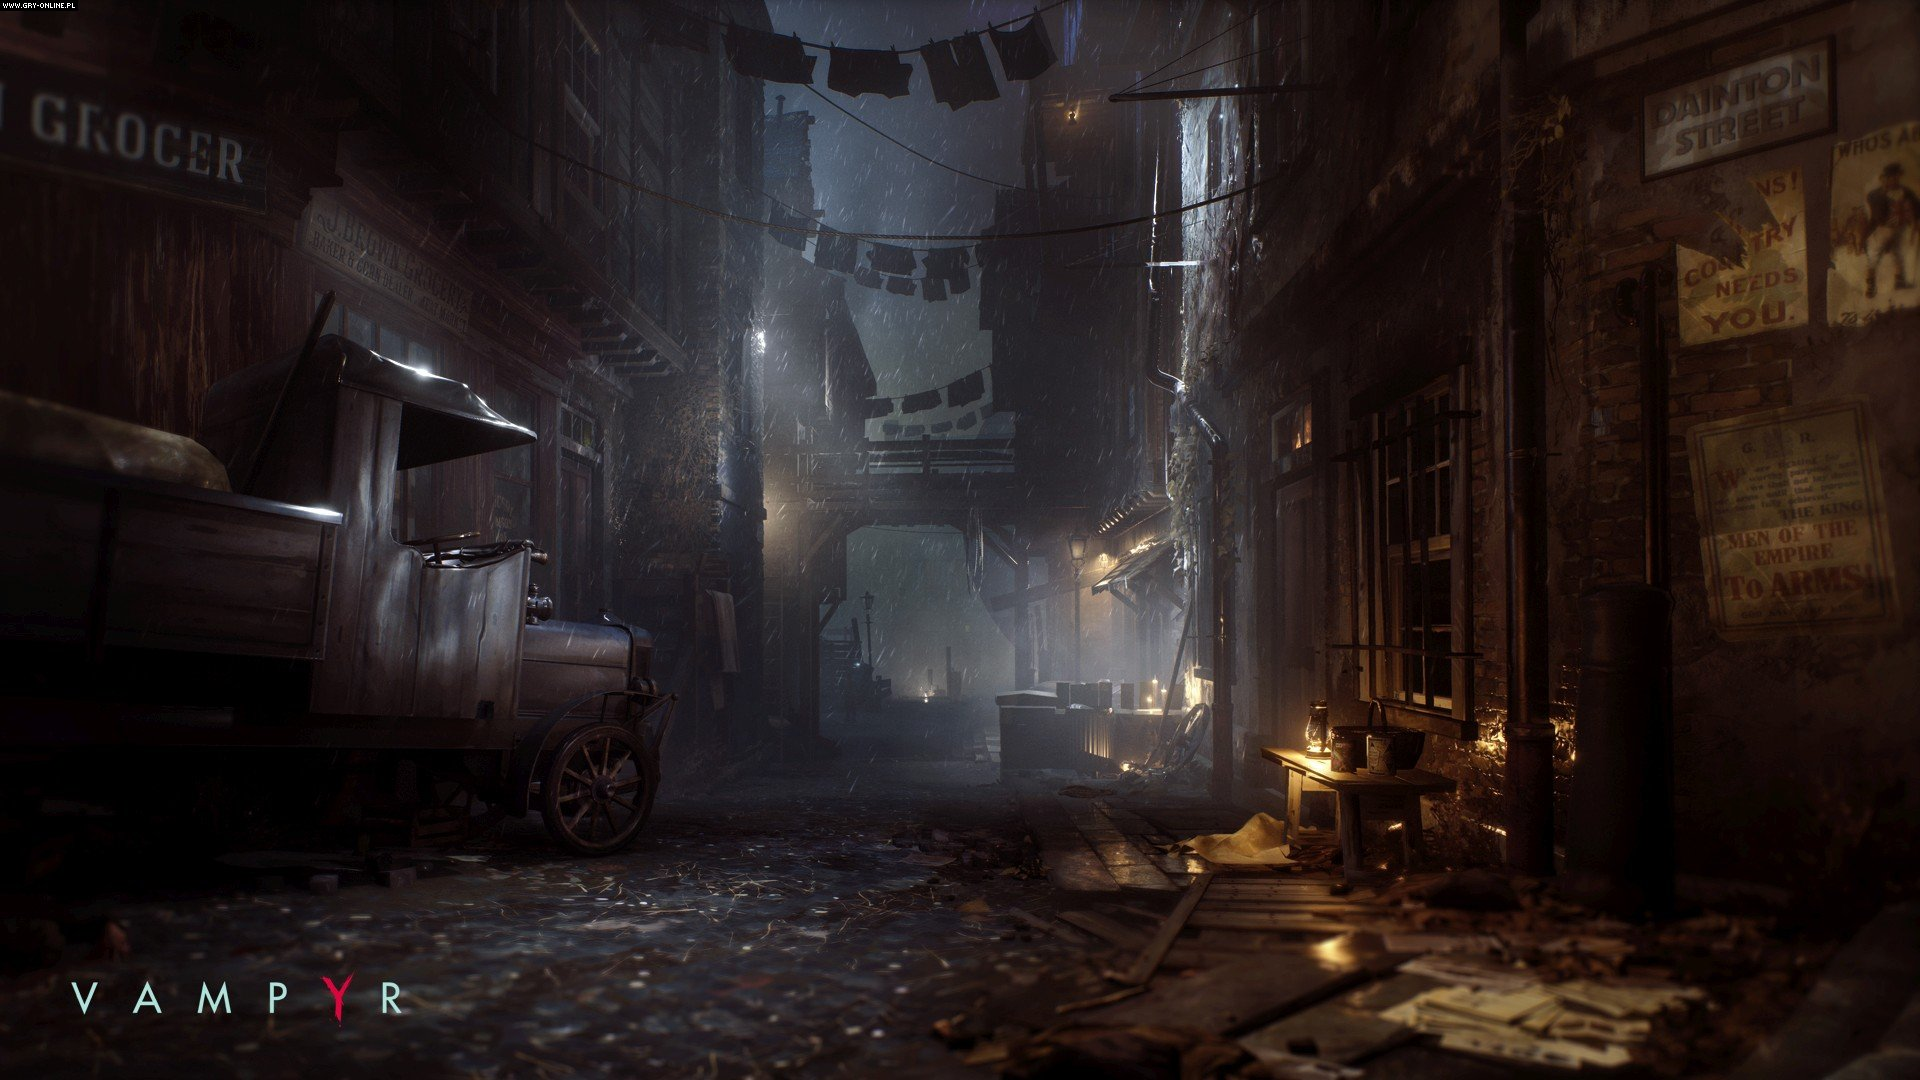 Vampyr PC, PS4, XONE, Switch Gry Screen 2/17, DONTNOD Entertainment, Focus Home Interactive